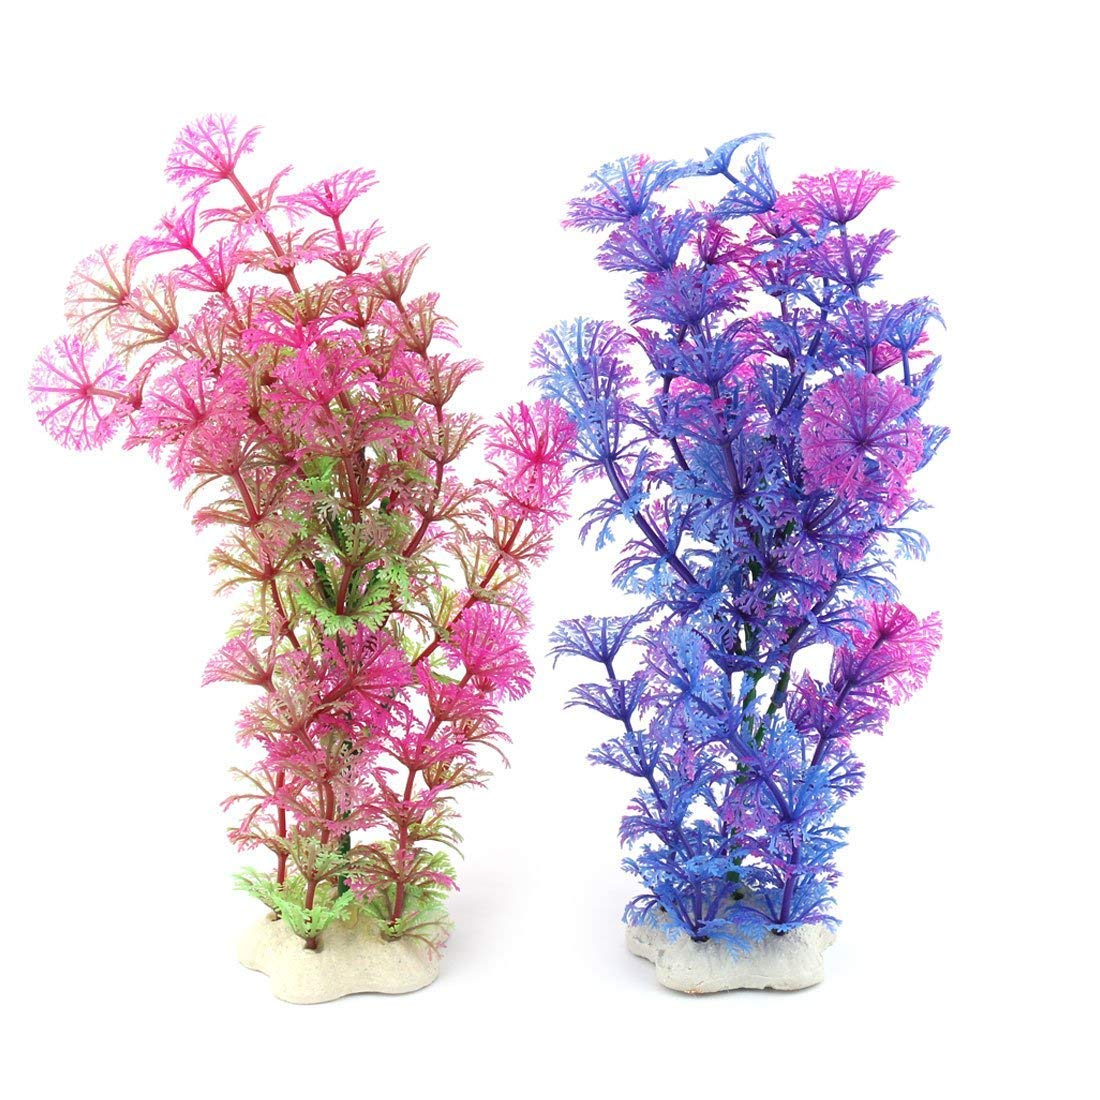 1Pc Ceramic Base Plastic Aquarium Silmulation Grass Aquatic Plant Waterweeds Decoration